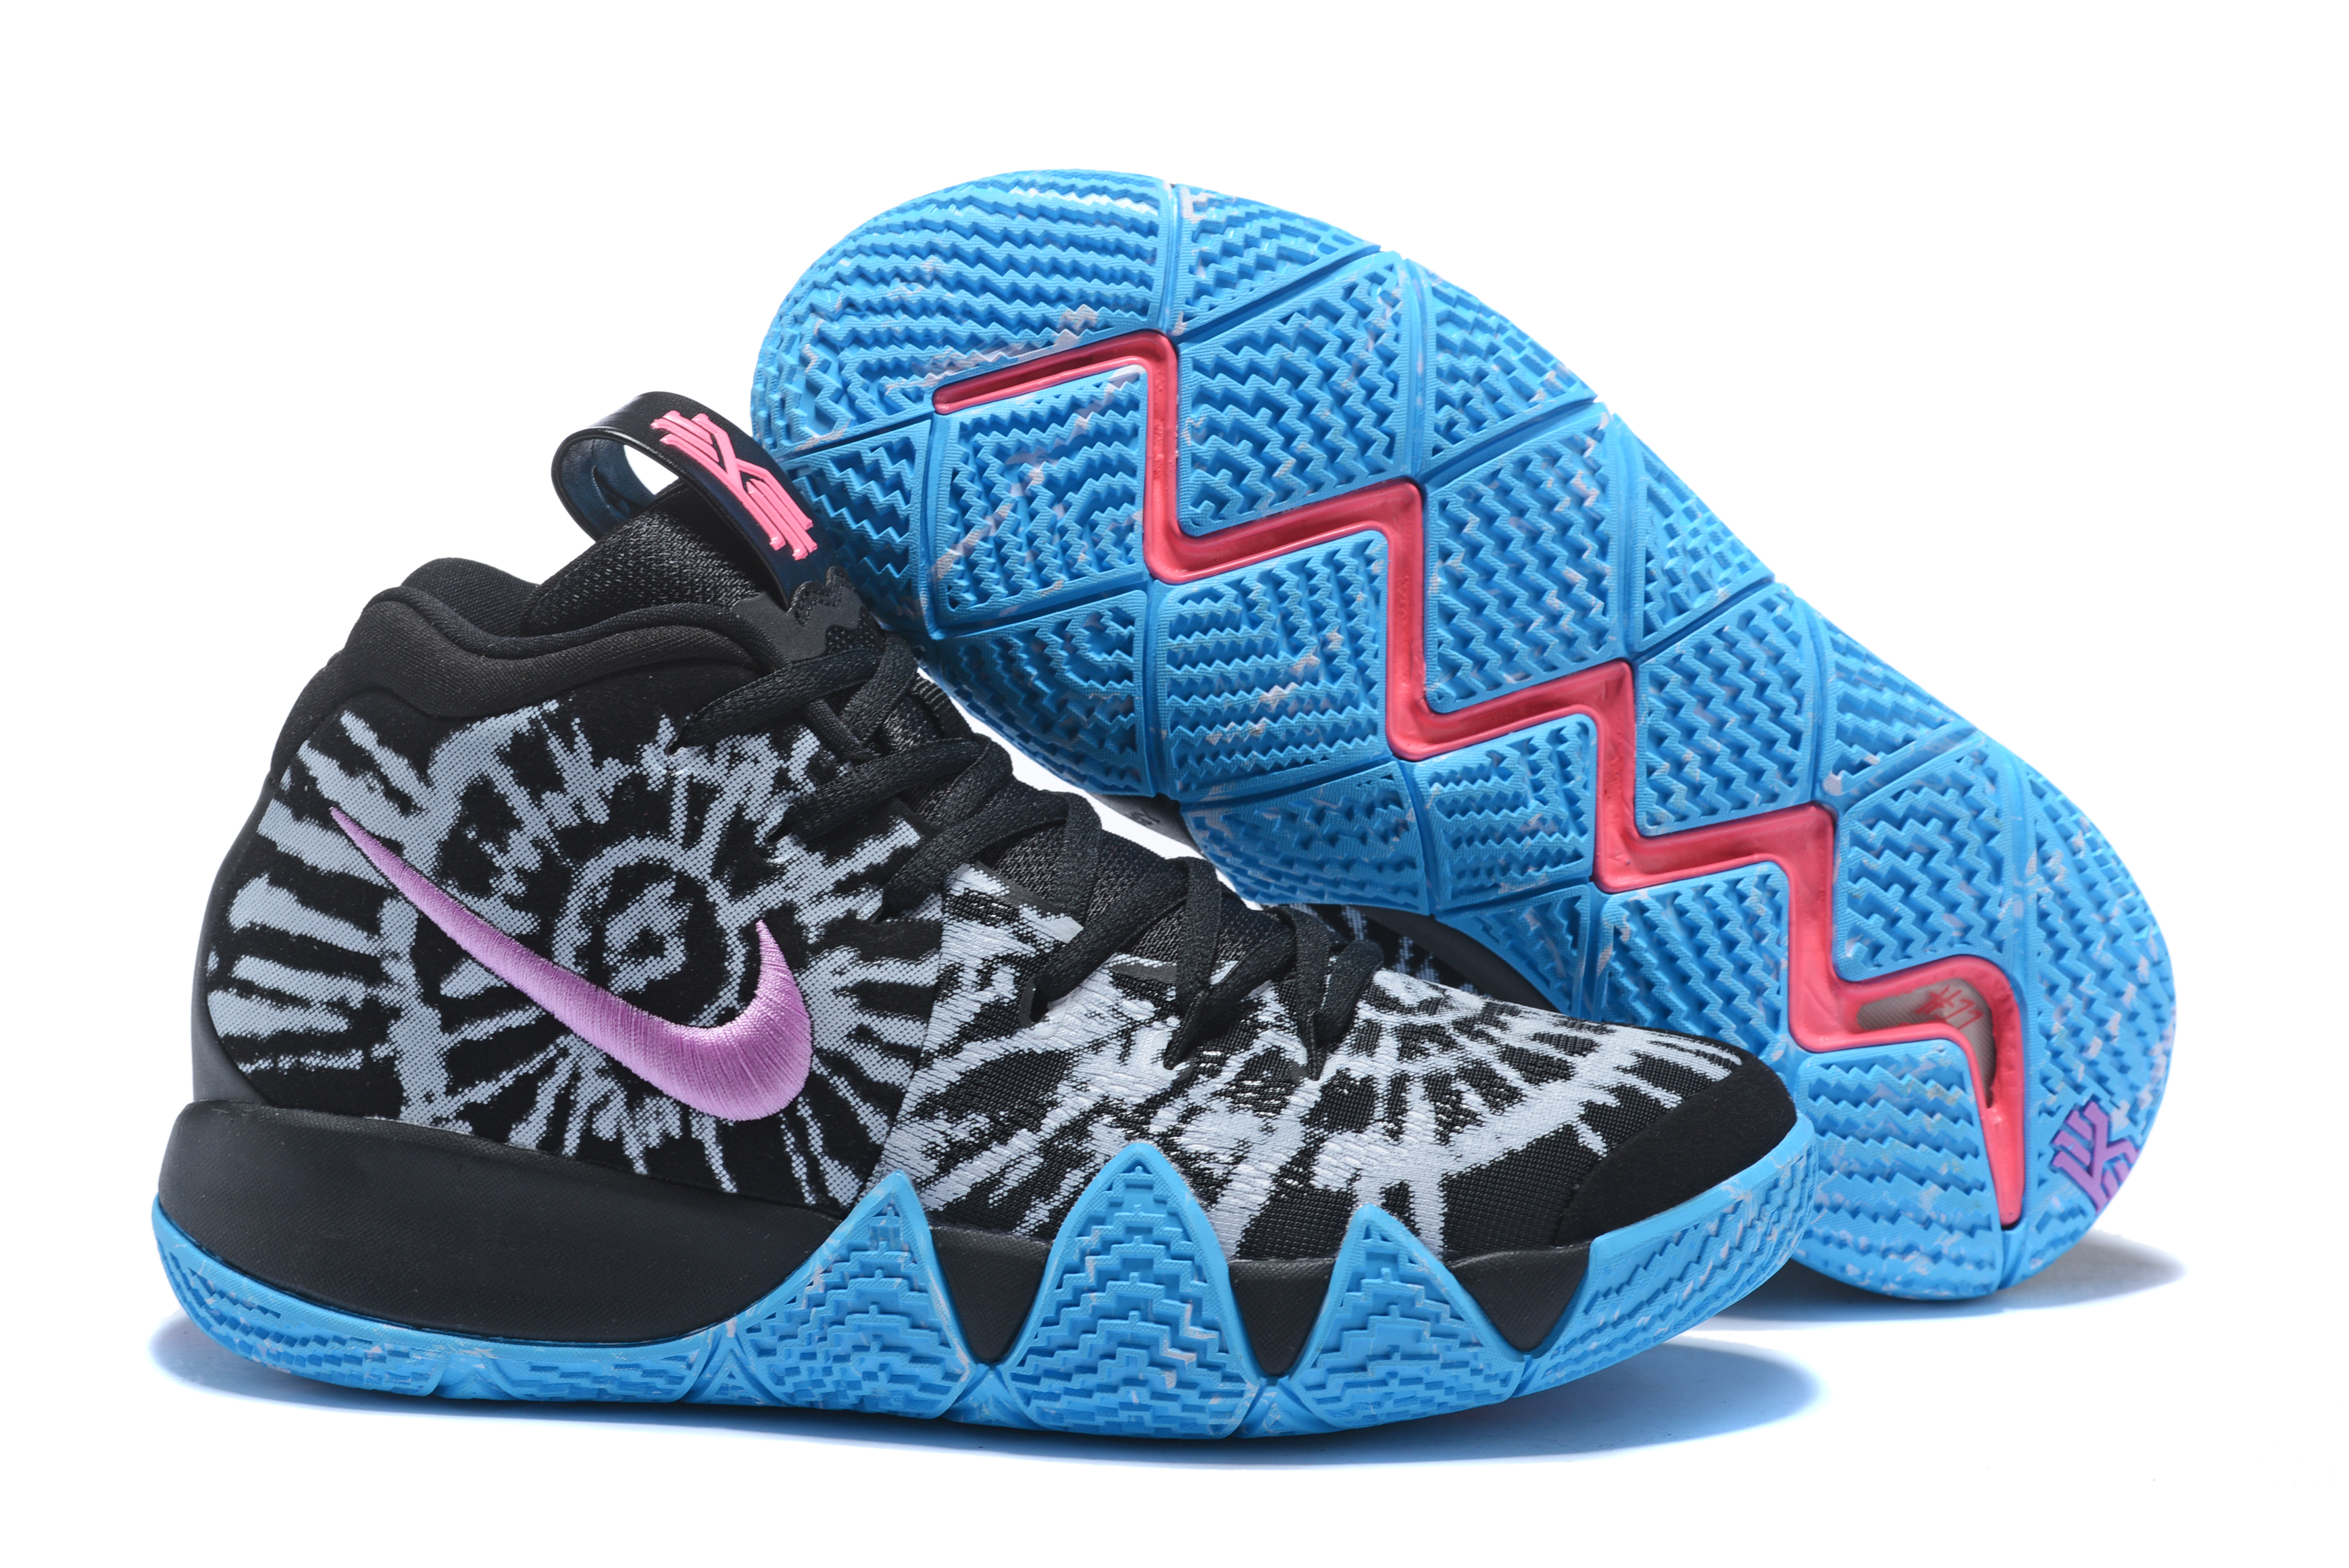 New Nike Kyrie 4 All Stars Shoes